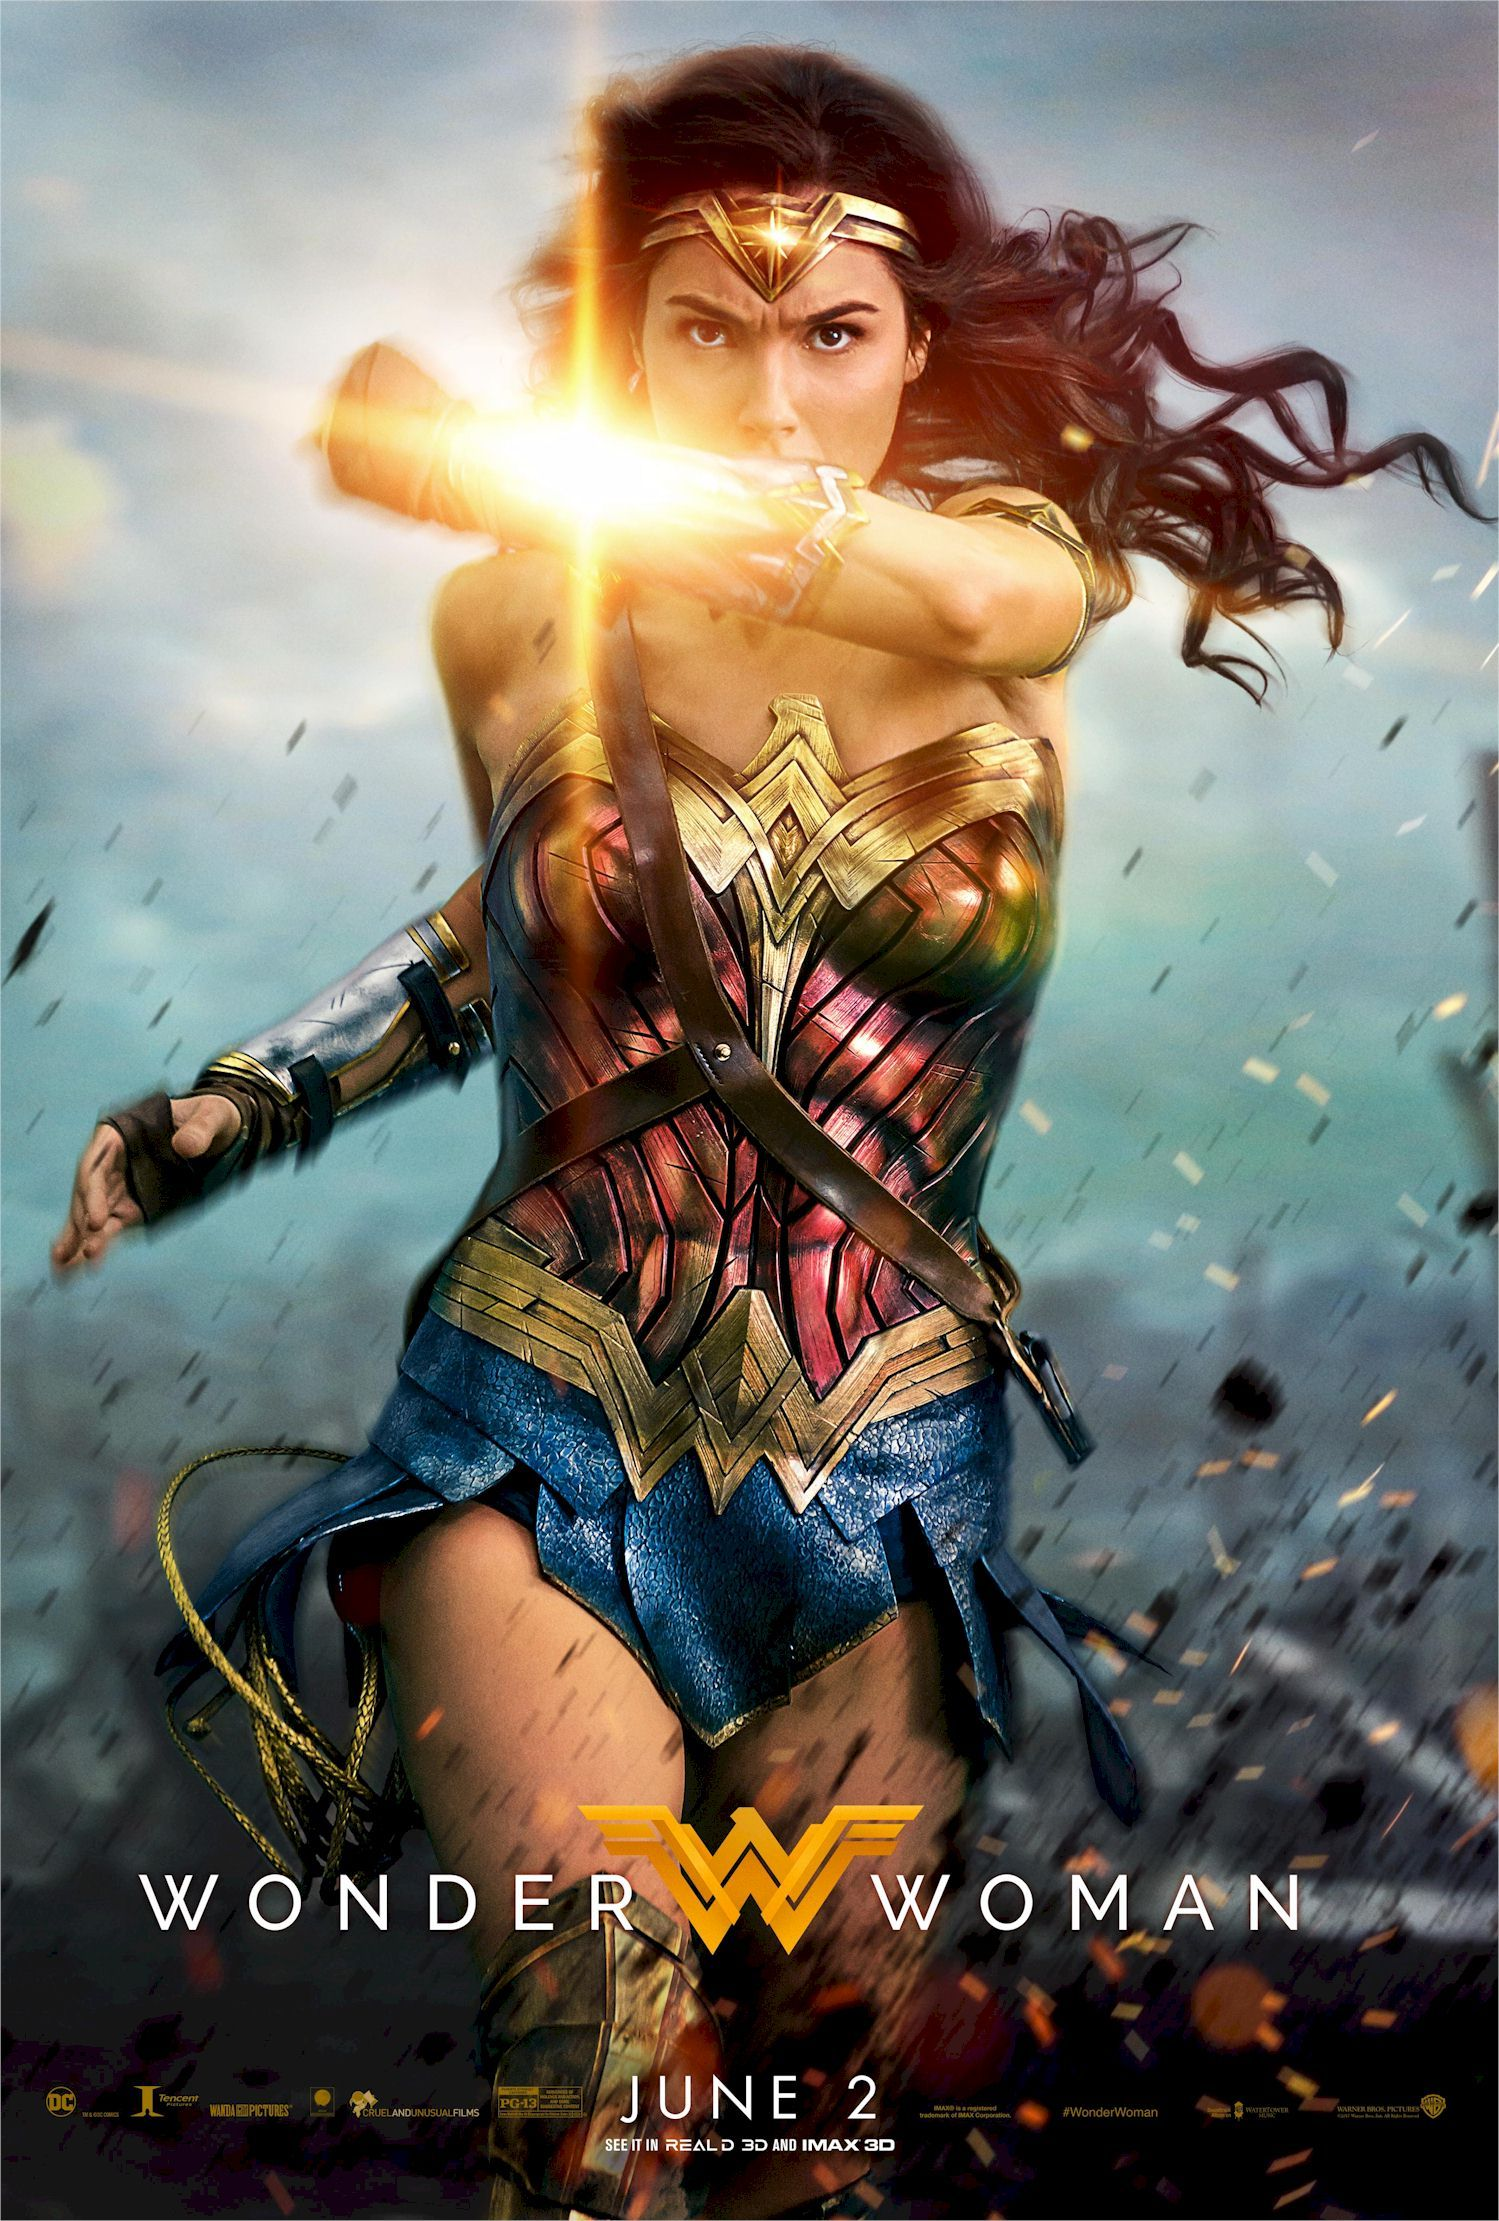 Wonder Woman Surprisingly I Really Enjoyed This Superhero Movie A Strong Female Character That I Fe Wonder Woman Movie Woman Movie Gal Gadot Wonder Woman